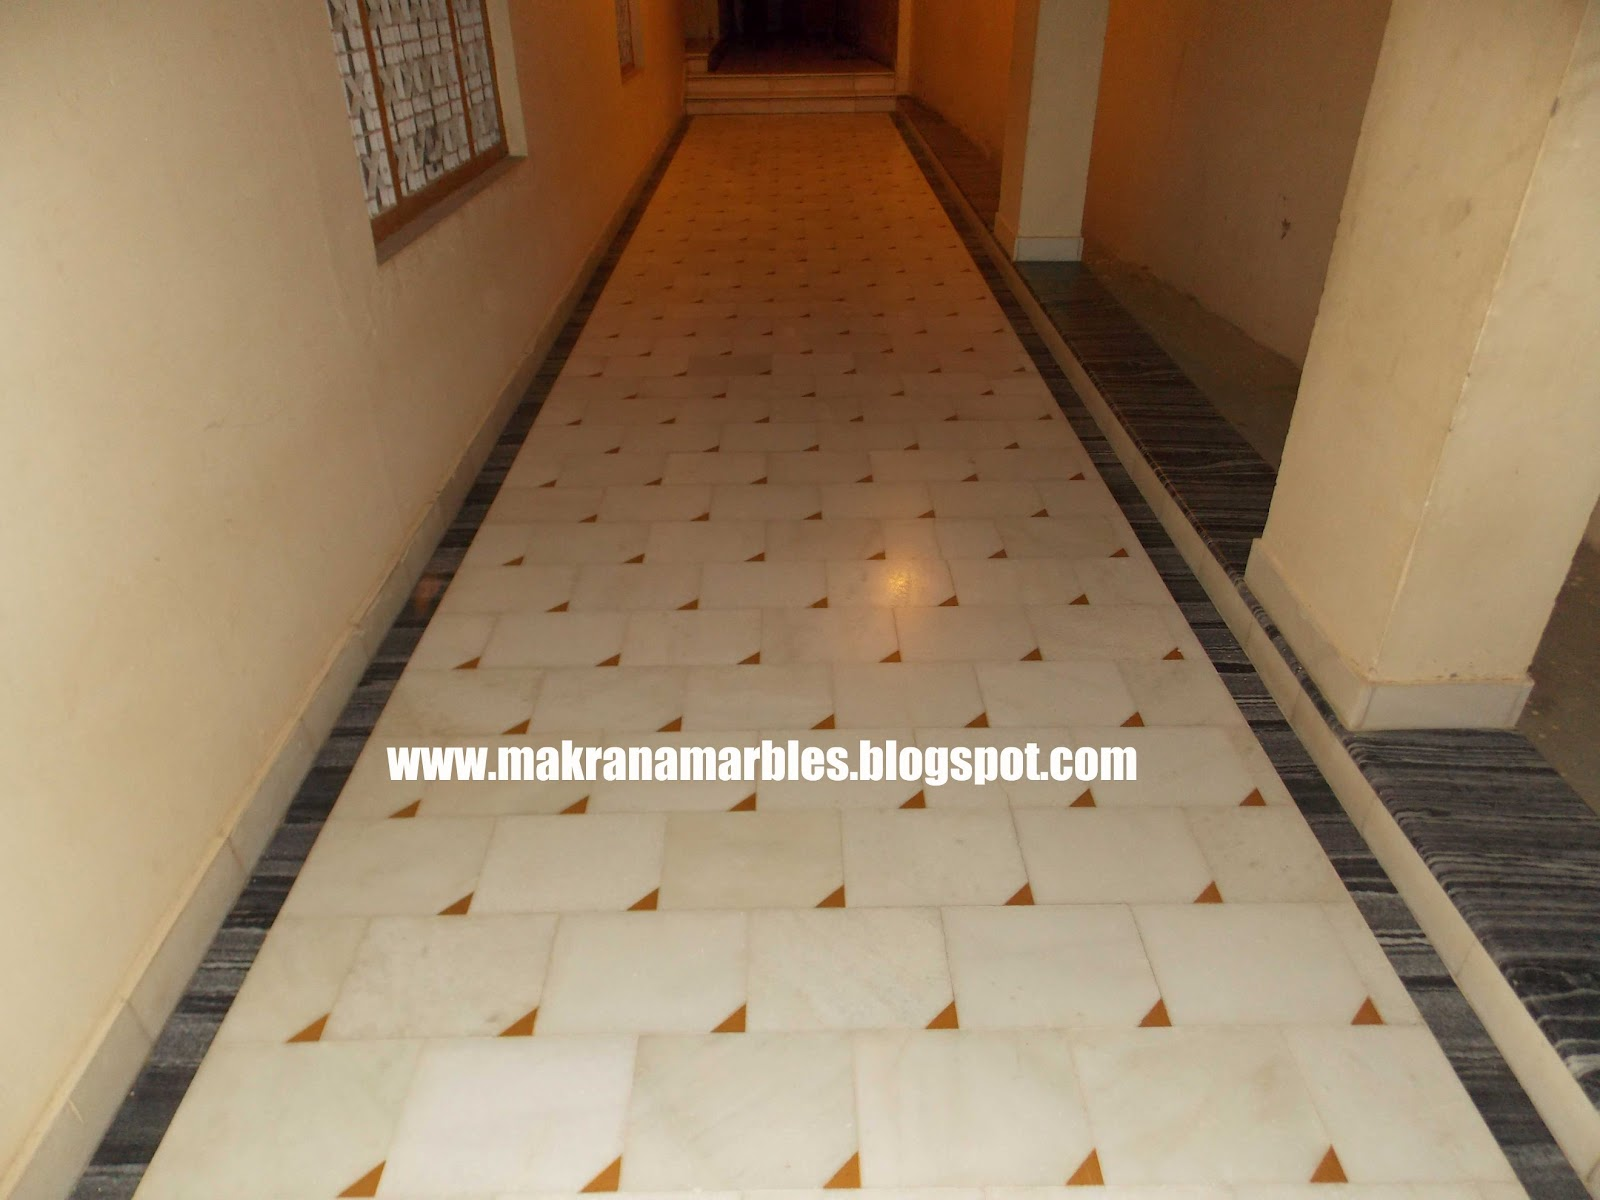 Makrana marble product and pricing details flooring pattern Floor design